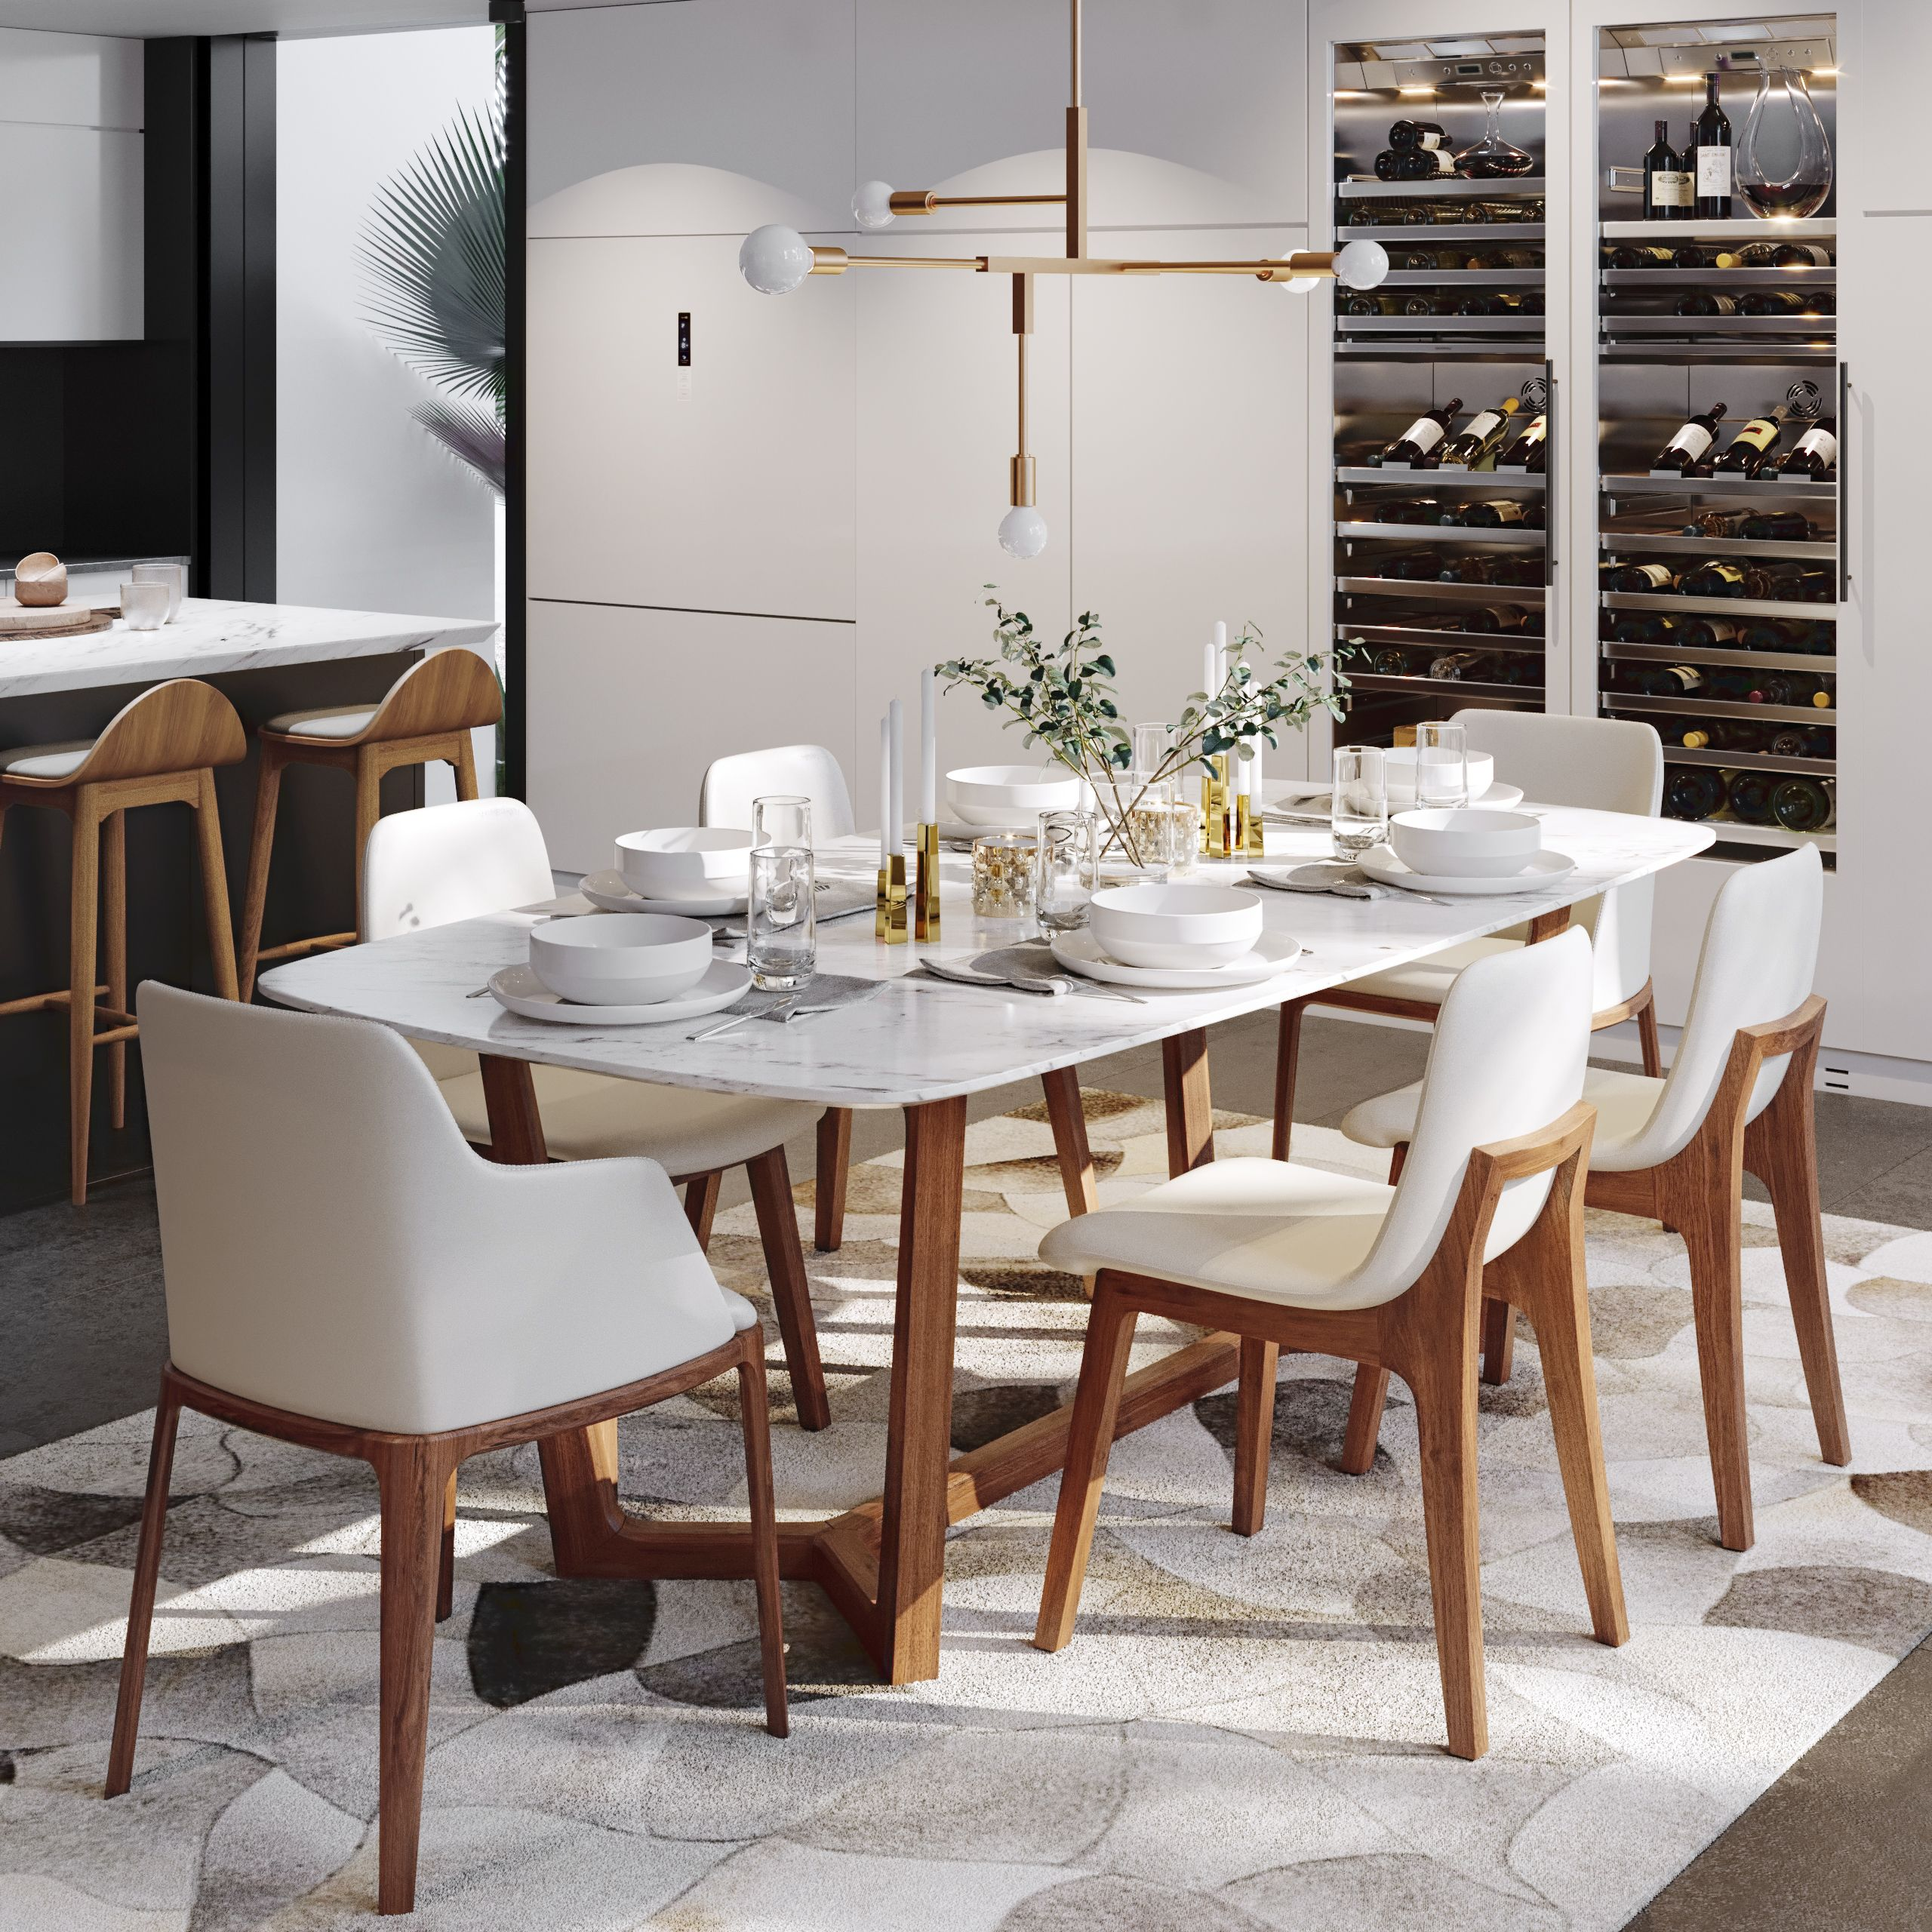 Evelyn Dining Table In 2021 Dining Table Marble Modern Dining Table Square Dining Tables